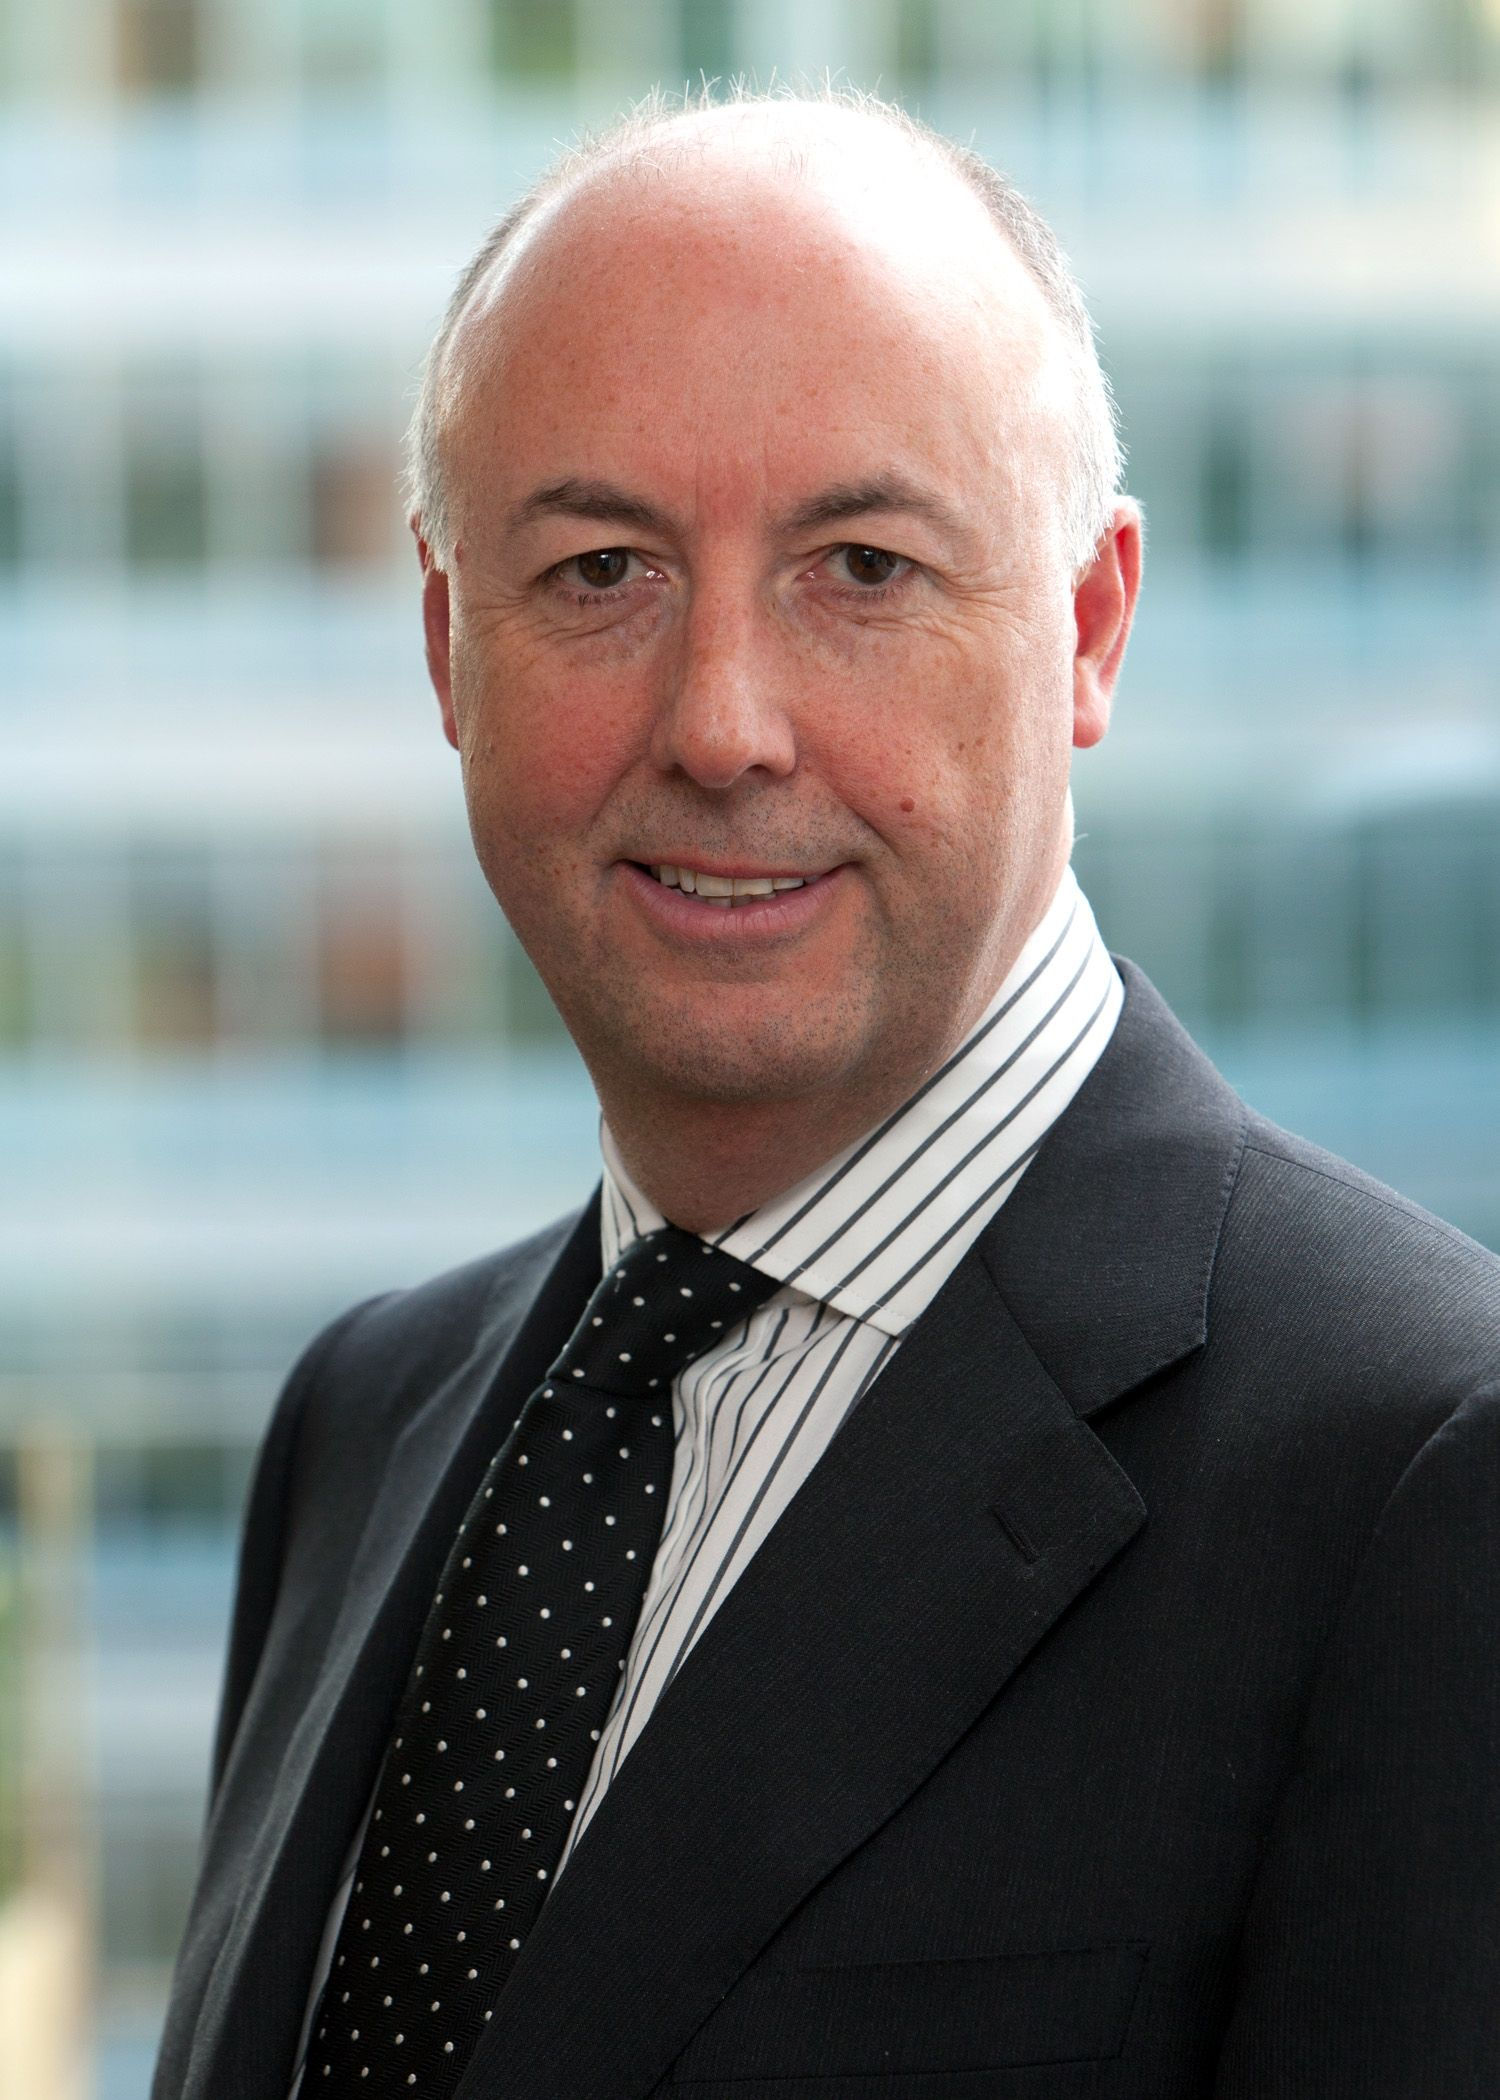 Headshot photo of Ian Tranter